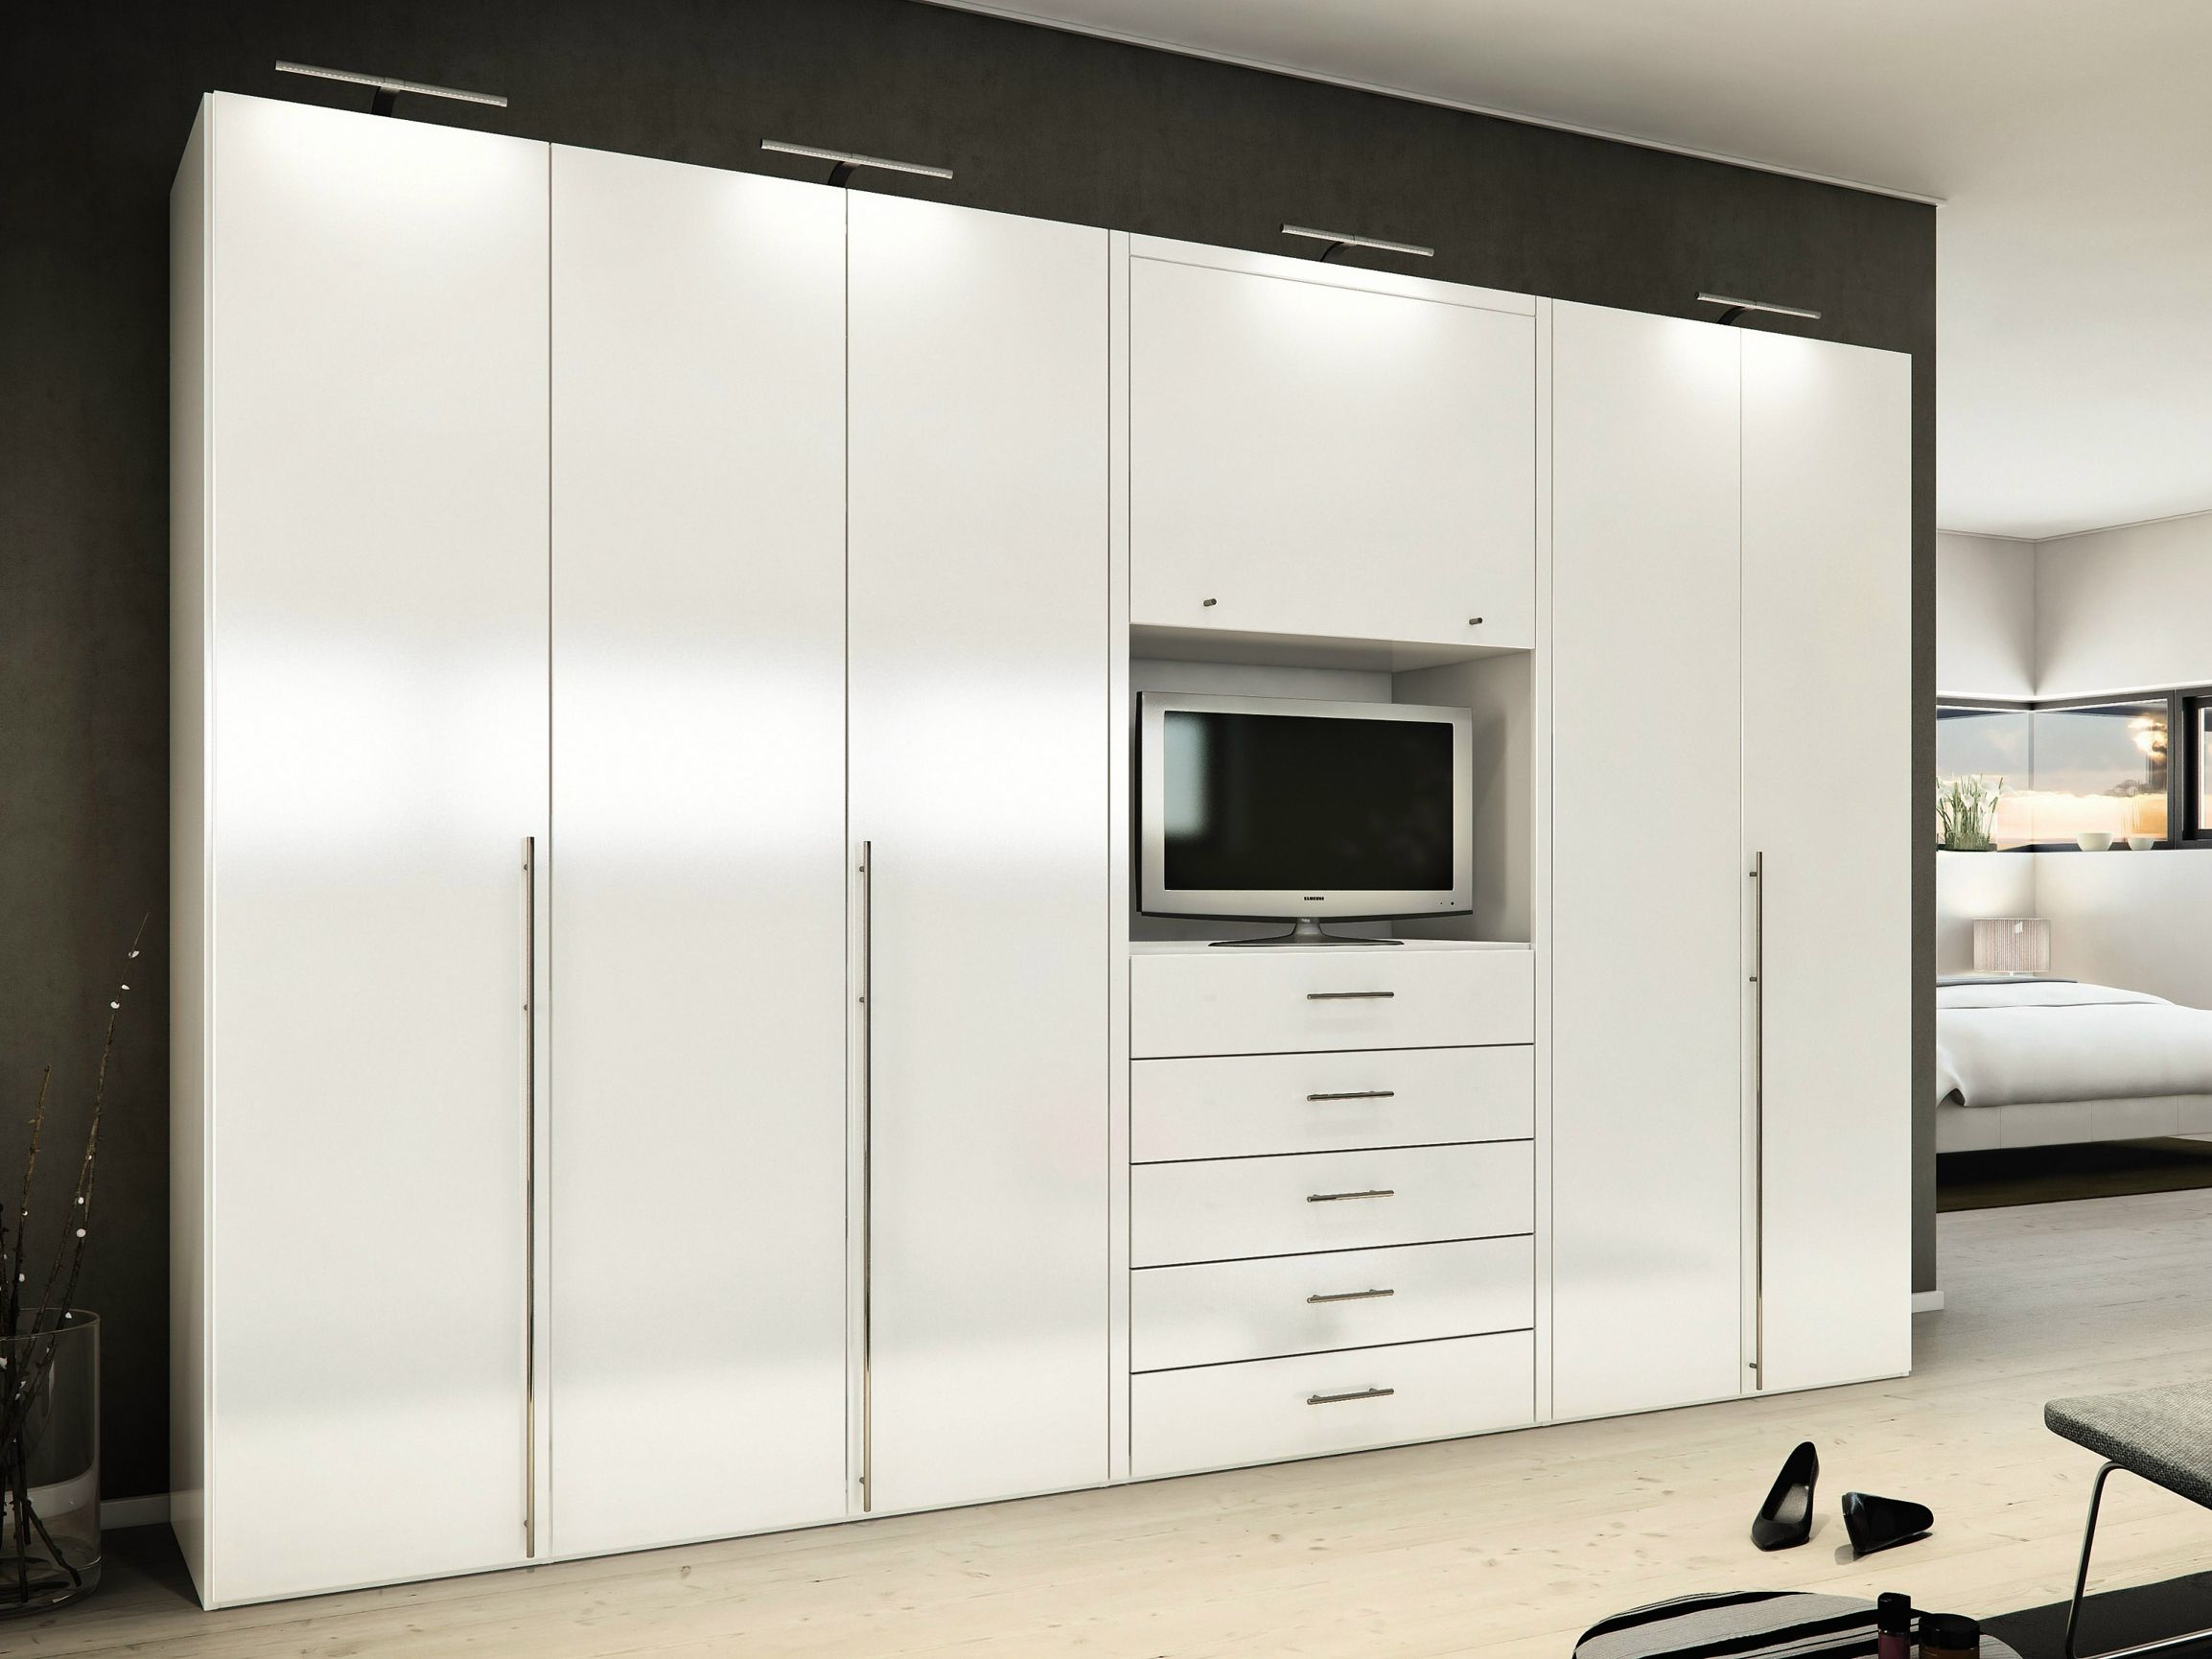 Wardrobe Closet With Tv Space Google Search Bedroom Decorating